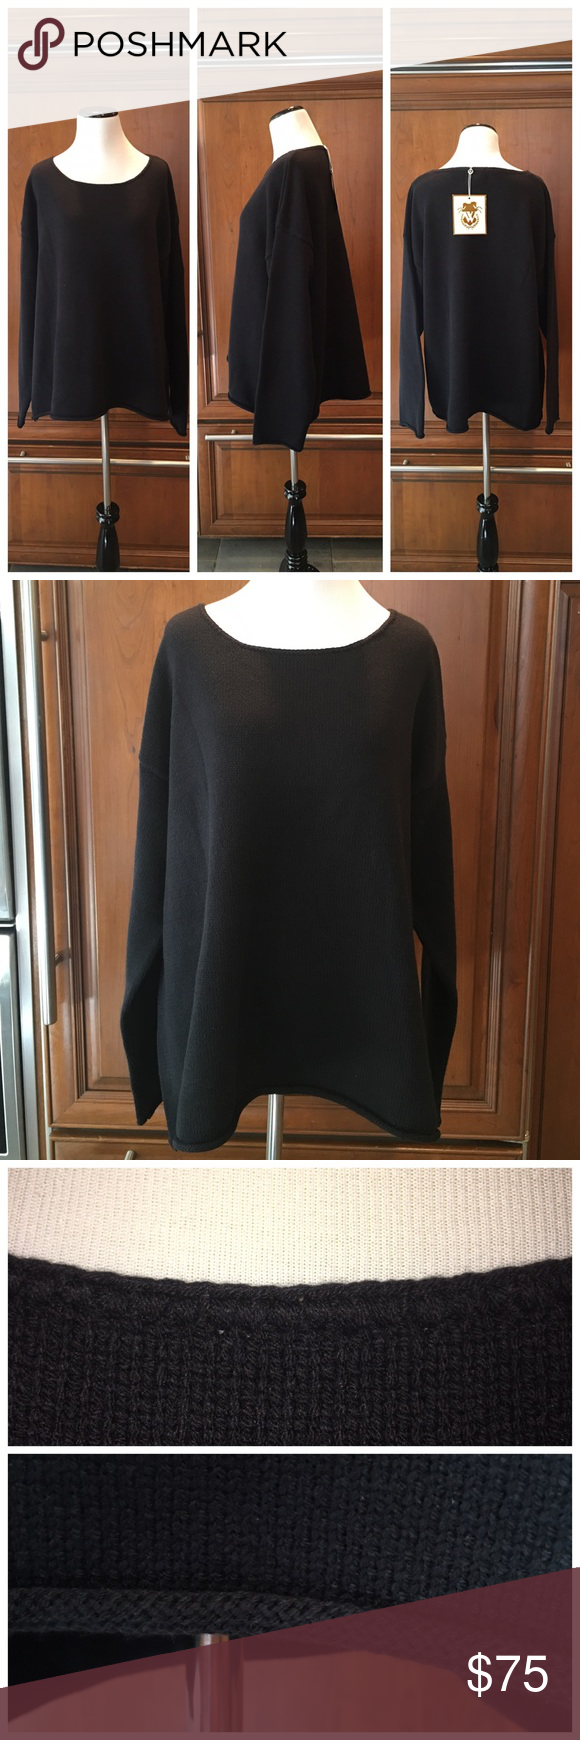 Wildfox Sweater Gold Label jet black oversized 60% cotton 40% acrylic knit sweater.  Heavy in weight and perfect for a cool summer night.  It's a great sweater that can be worn all year long.  It has a stitched crew neck and little rolled bottom and sleeves.  ❤️❤️ NO TRADES NO PYPL WILL NOT DISCUSS PRICE IN COMMENTS Wildfox Sweaters Crew & Scoop Necks